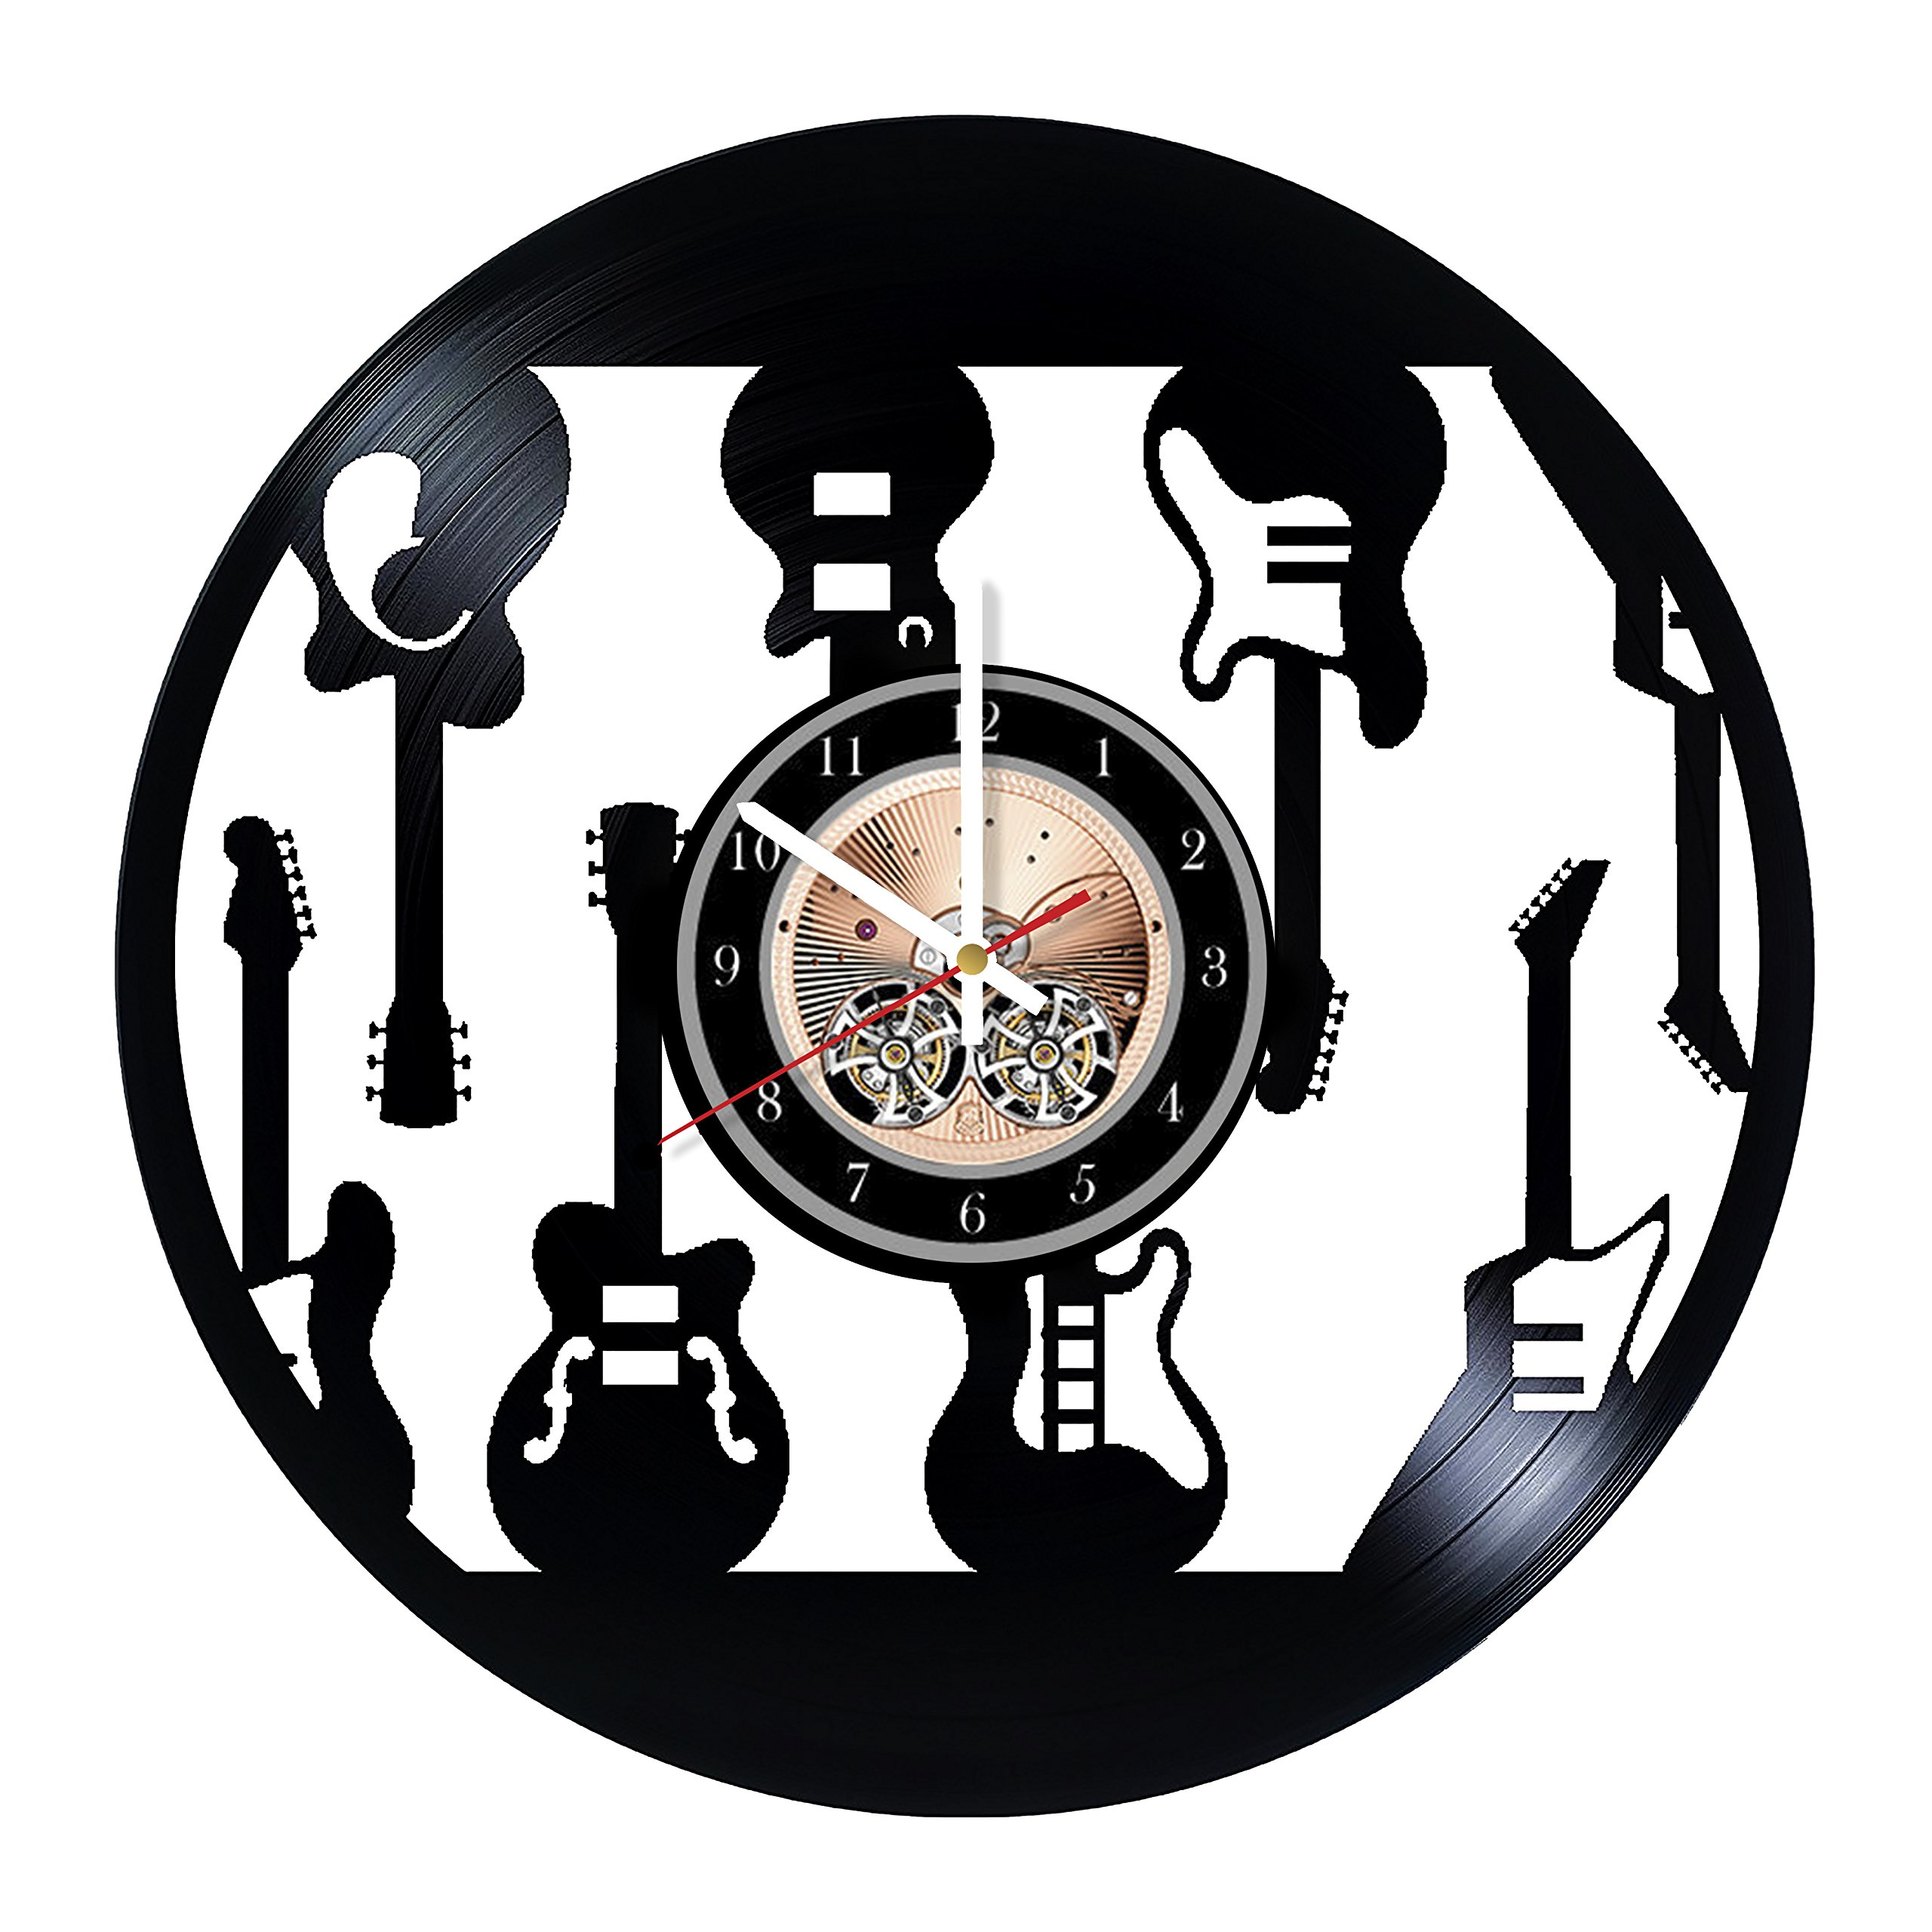 Electric Guitars Design Handmade Vinyl Record Wall Clock - Get unique home room wall decor - Gift ideas for men and women - Musical Instruments Unique Modern Art by Wood Workshop